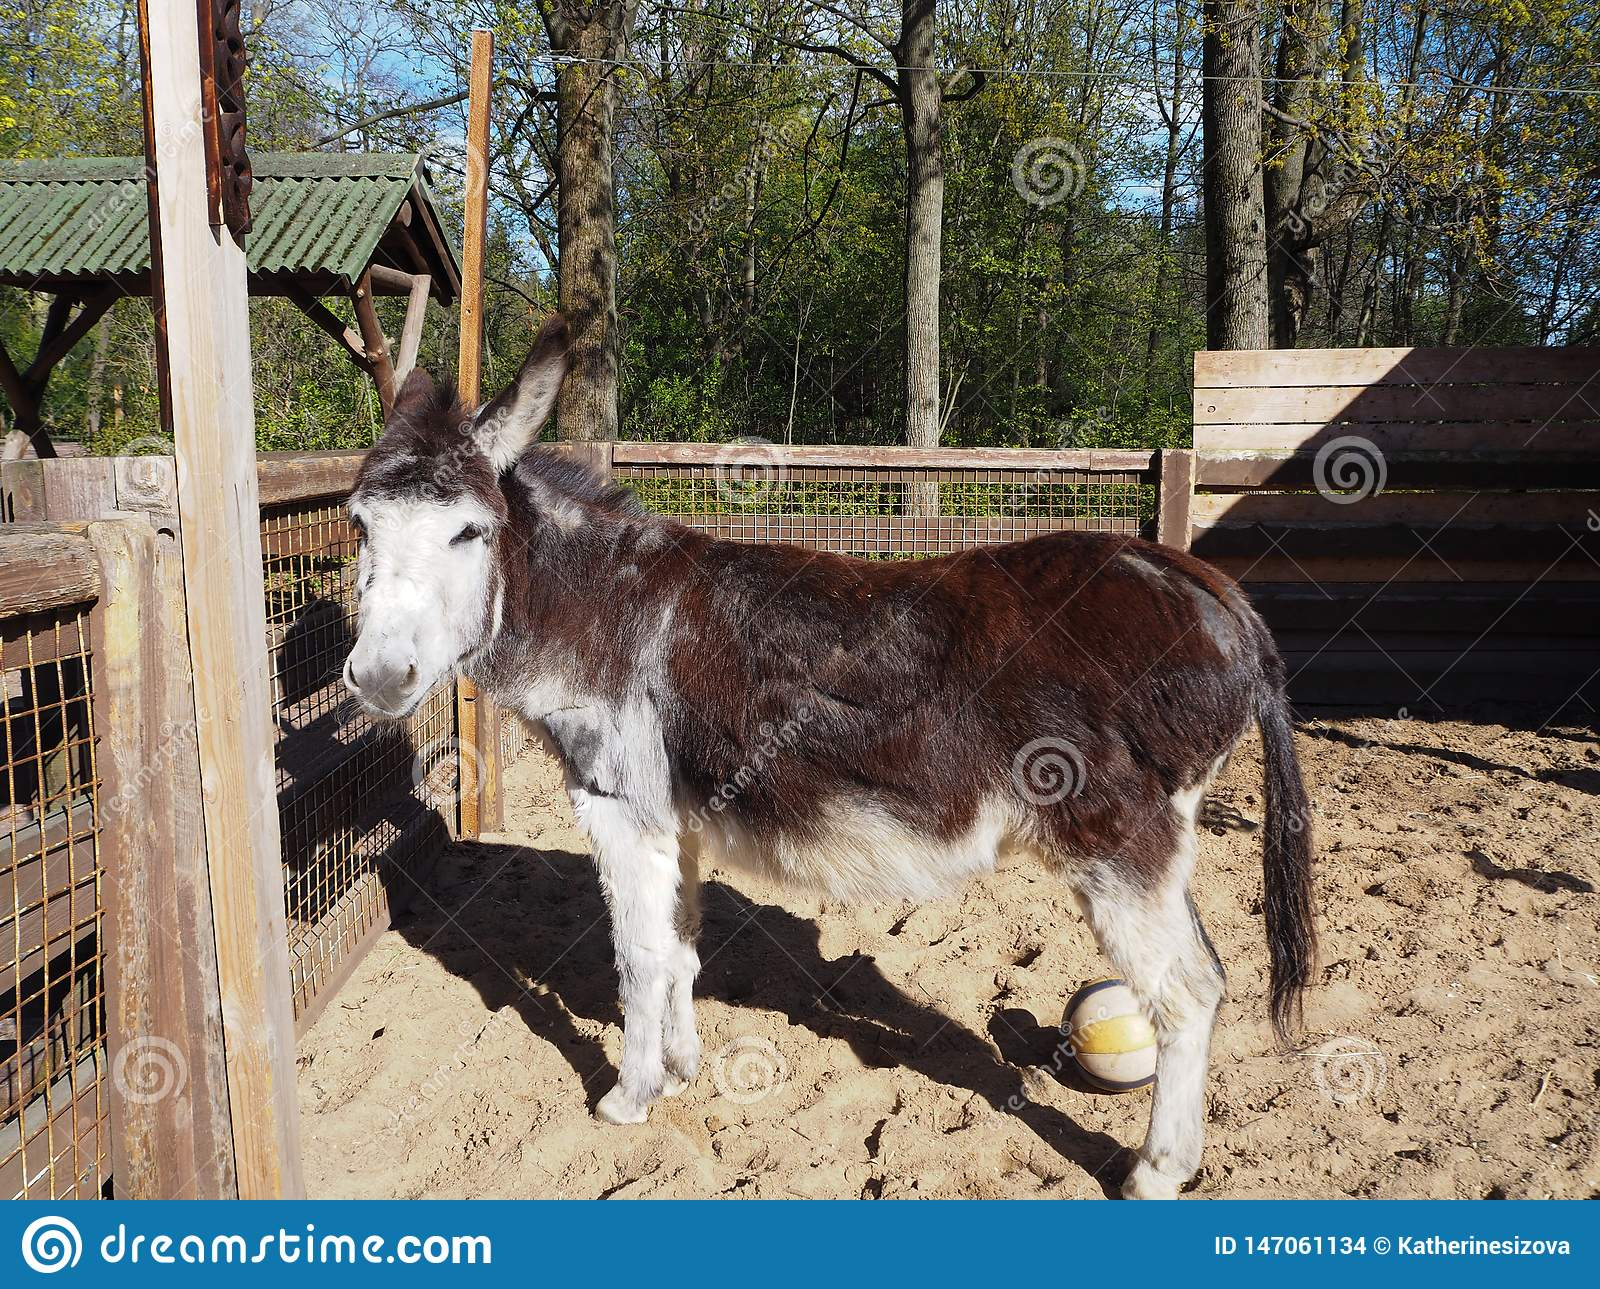 A cute little donkey is standing in the sun in the park zoo